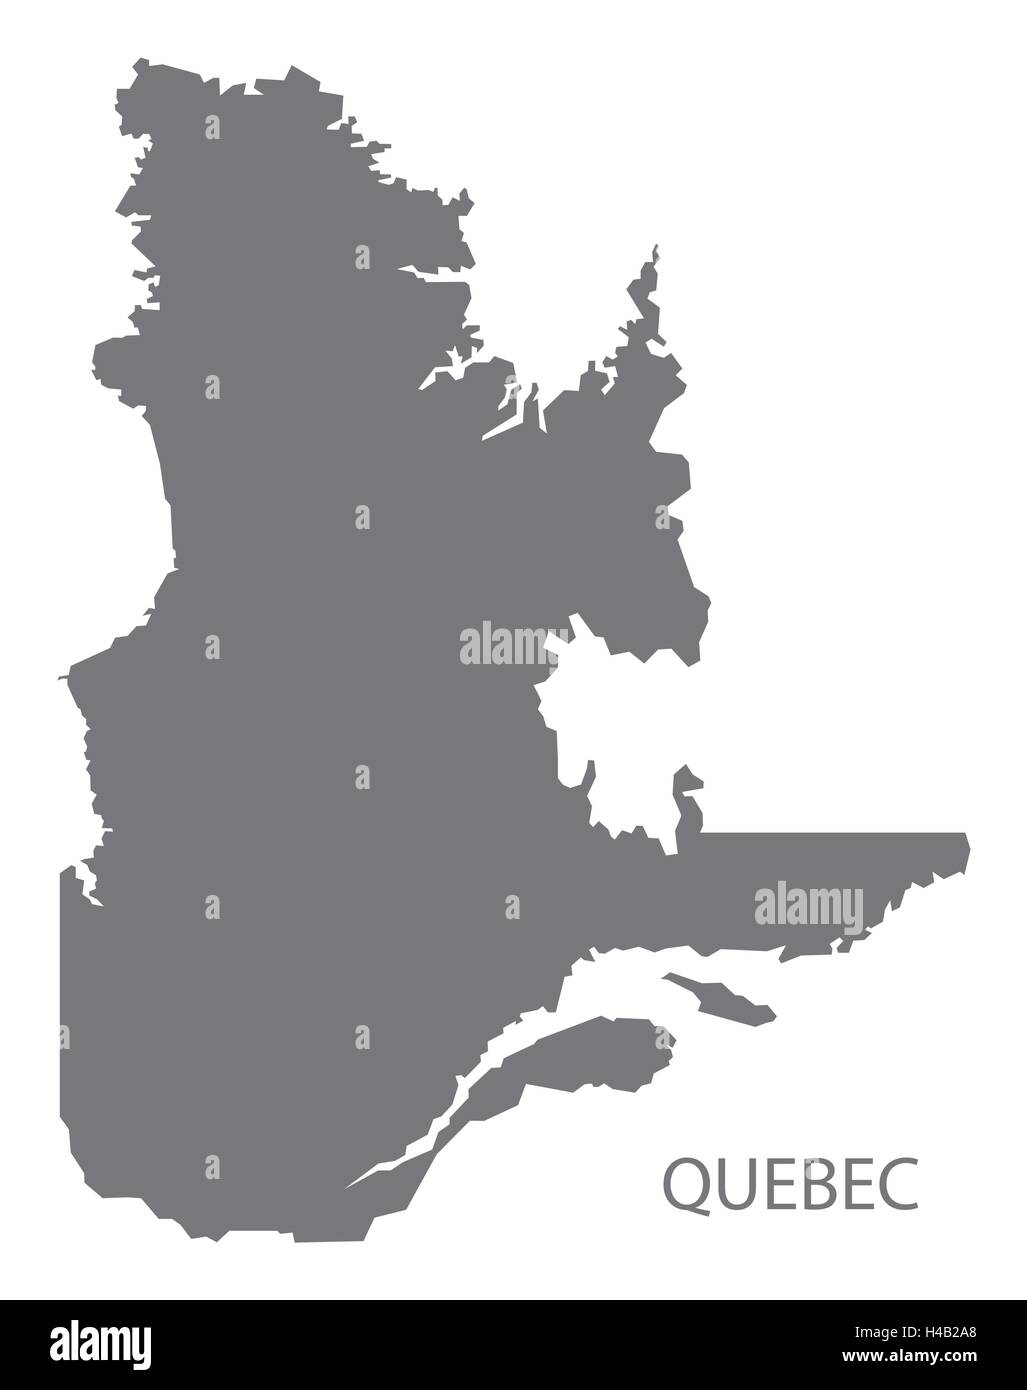 Quebec On Map Of Canada.Quebec Map Vector Stock Photos Quebec Map Vector Stock Images Alamy